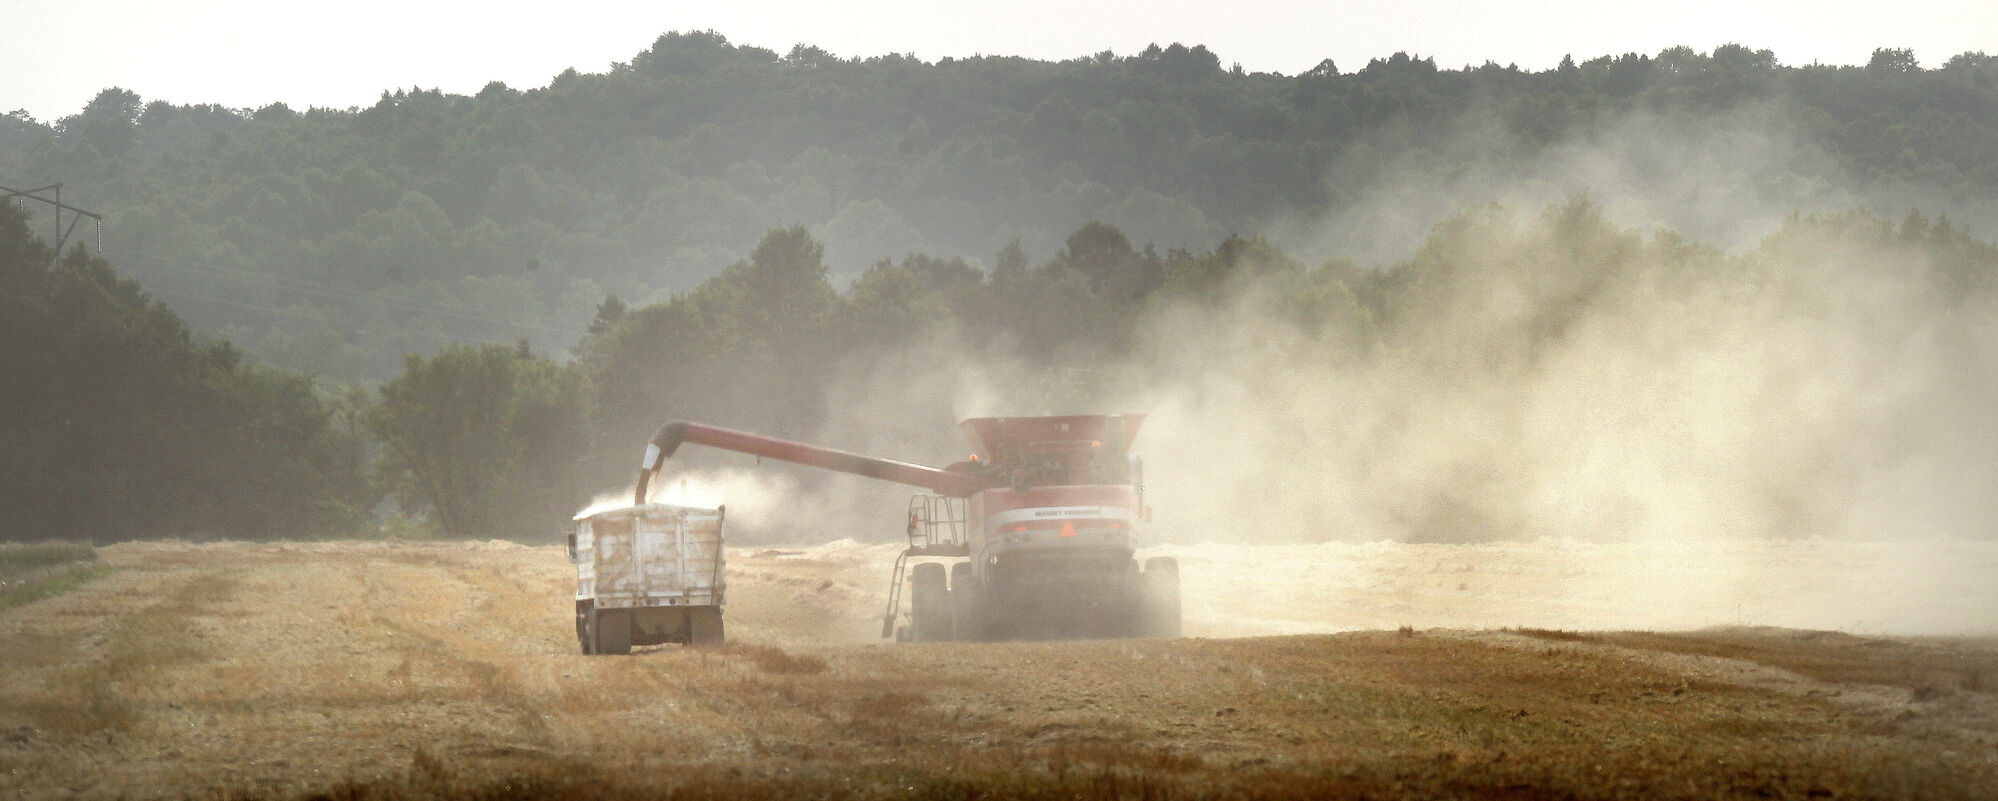 Dust frames a combine against the Manitoba Escarpment near Roseisle, Man. as it dumps grain from it's hopper into a waiting grain truck in August 2013. Grain prices are plummeting as railways can't handle record crops